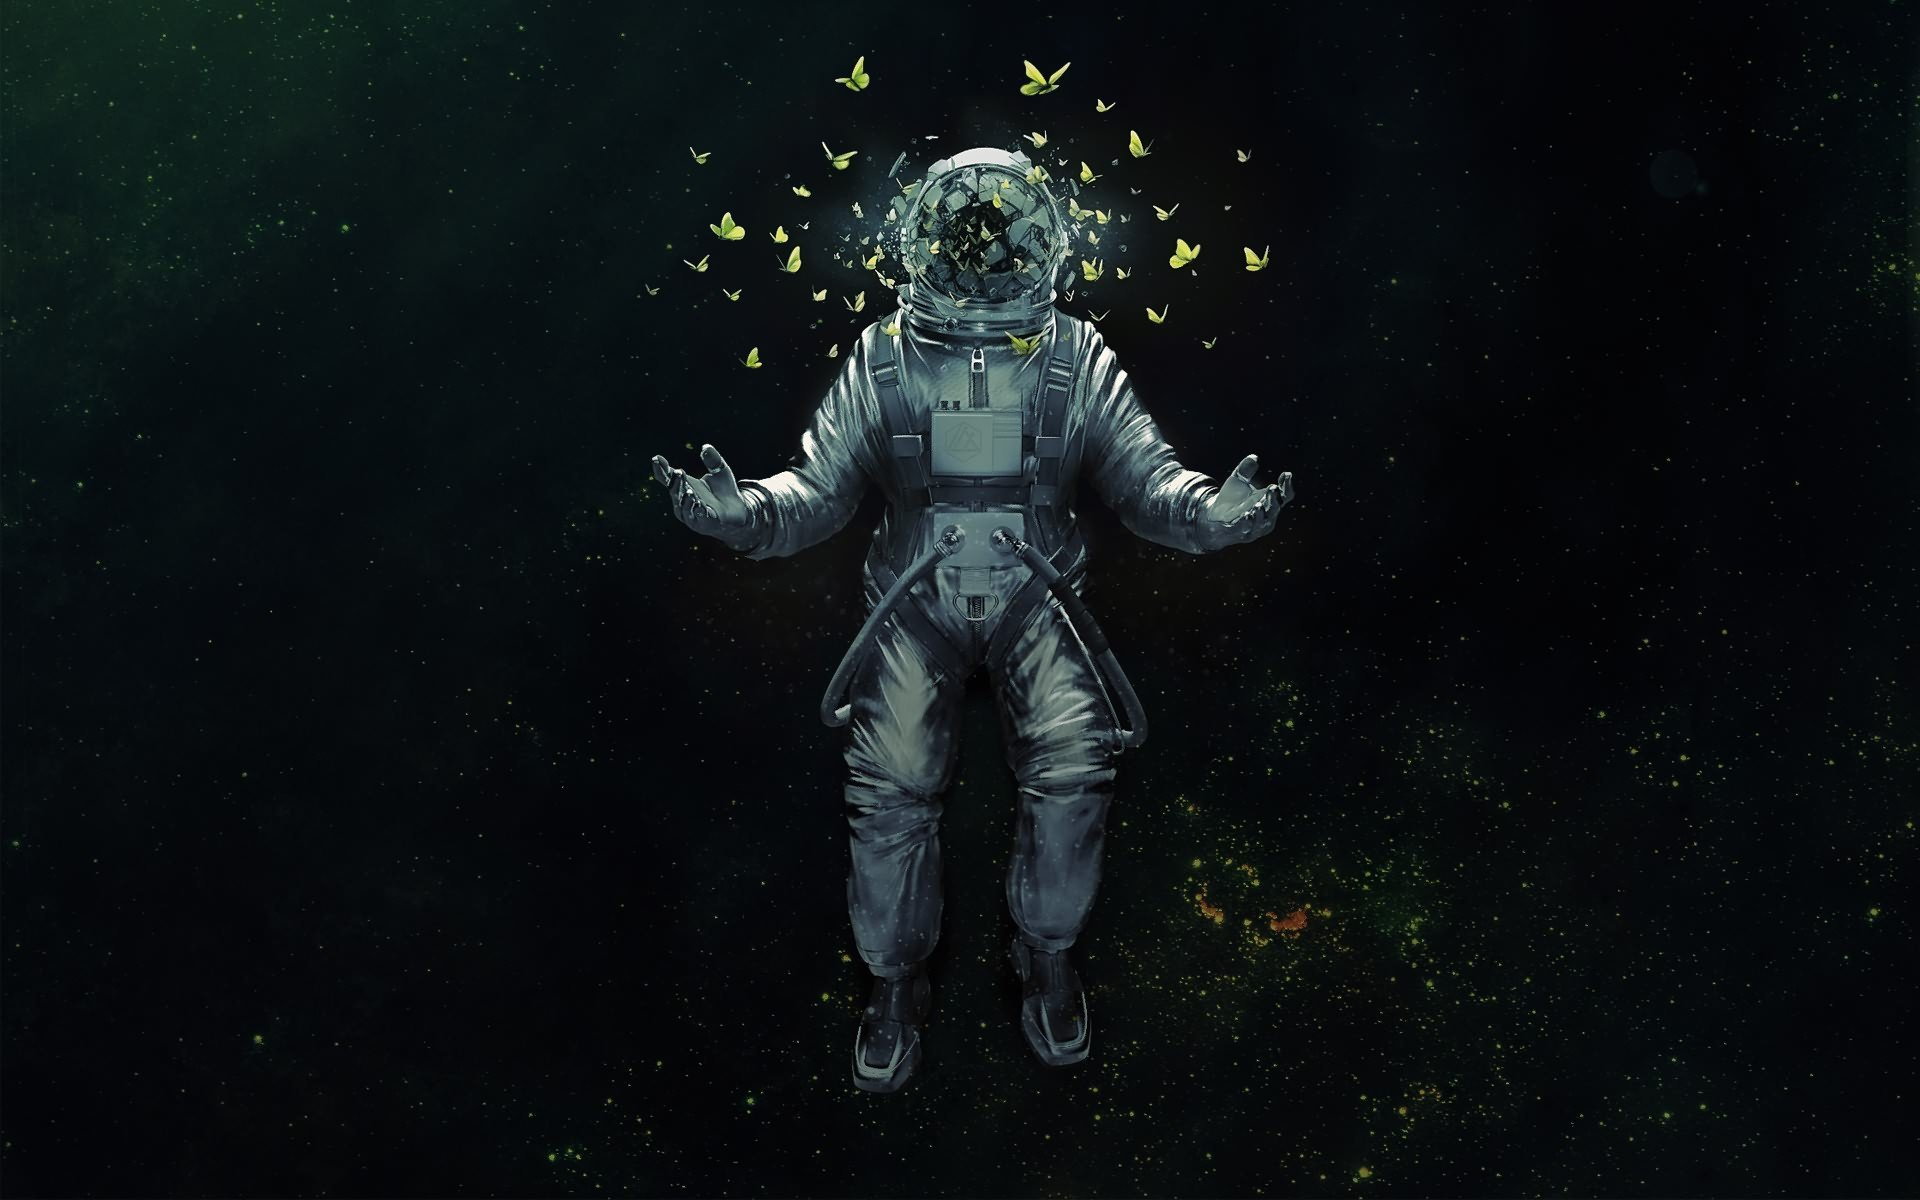 astronaut trippy weed wallpaper - photo #26